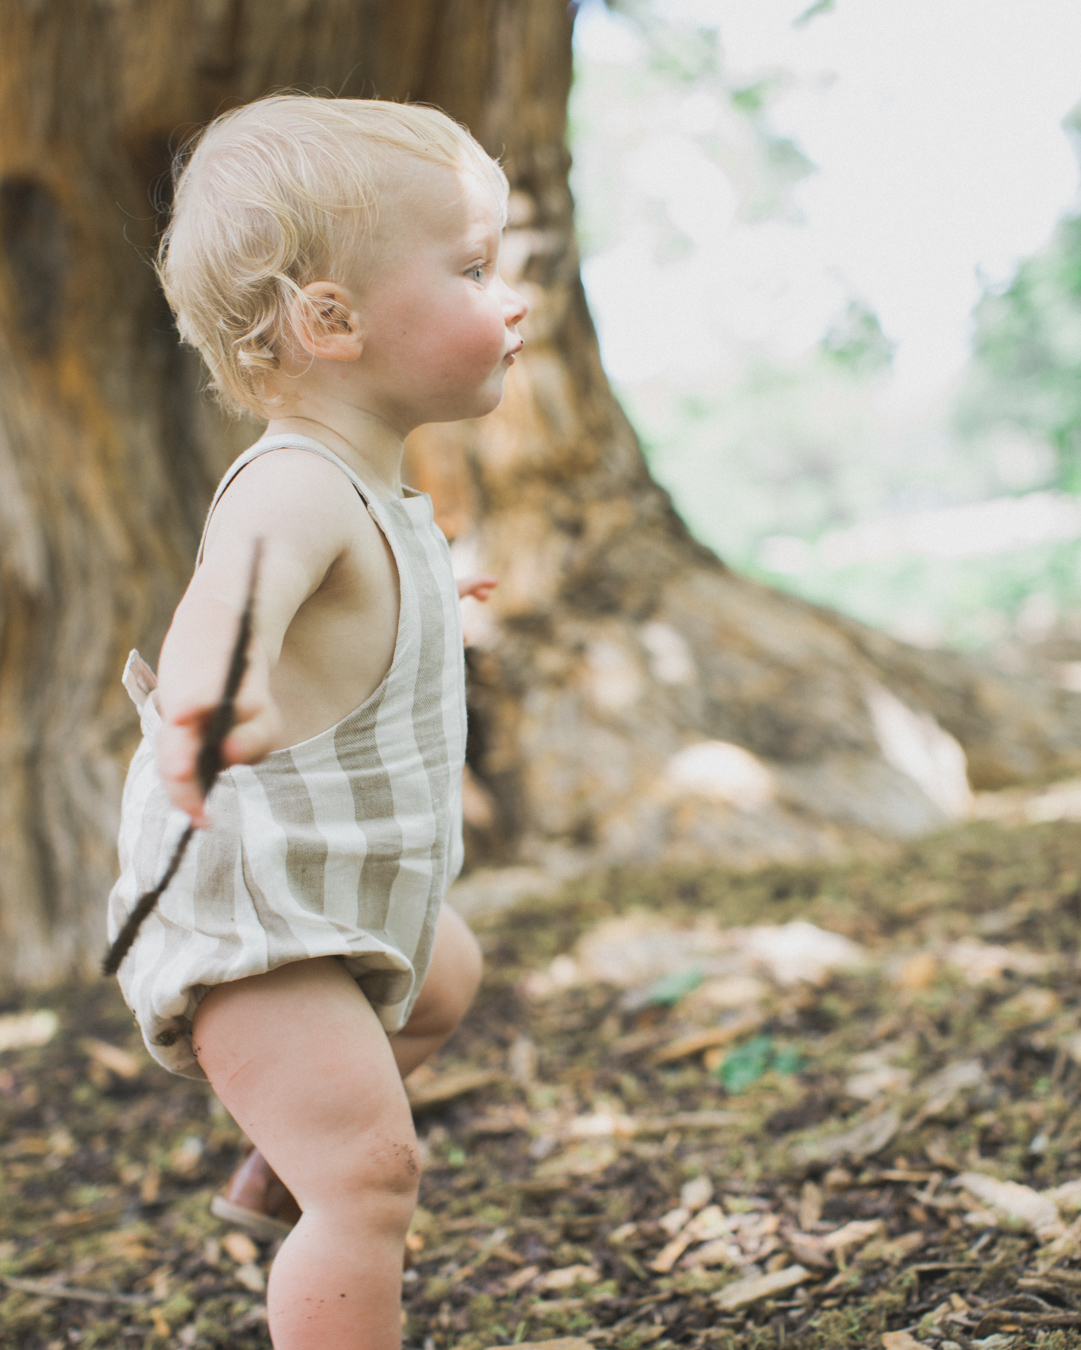 fort worth photographer, fort worth lifestyle photographer, fort worth milestone photographer, fort worth family photographer, fort worth natural light photographer, fort worth fine art photographer, rylee and cru, rylee and cru bubble, dallas arboretum, dallas botanical gardens, dallas family photographer, baby by design fort worth